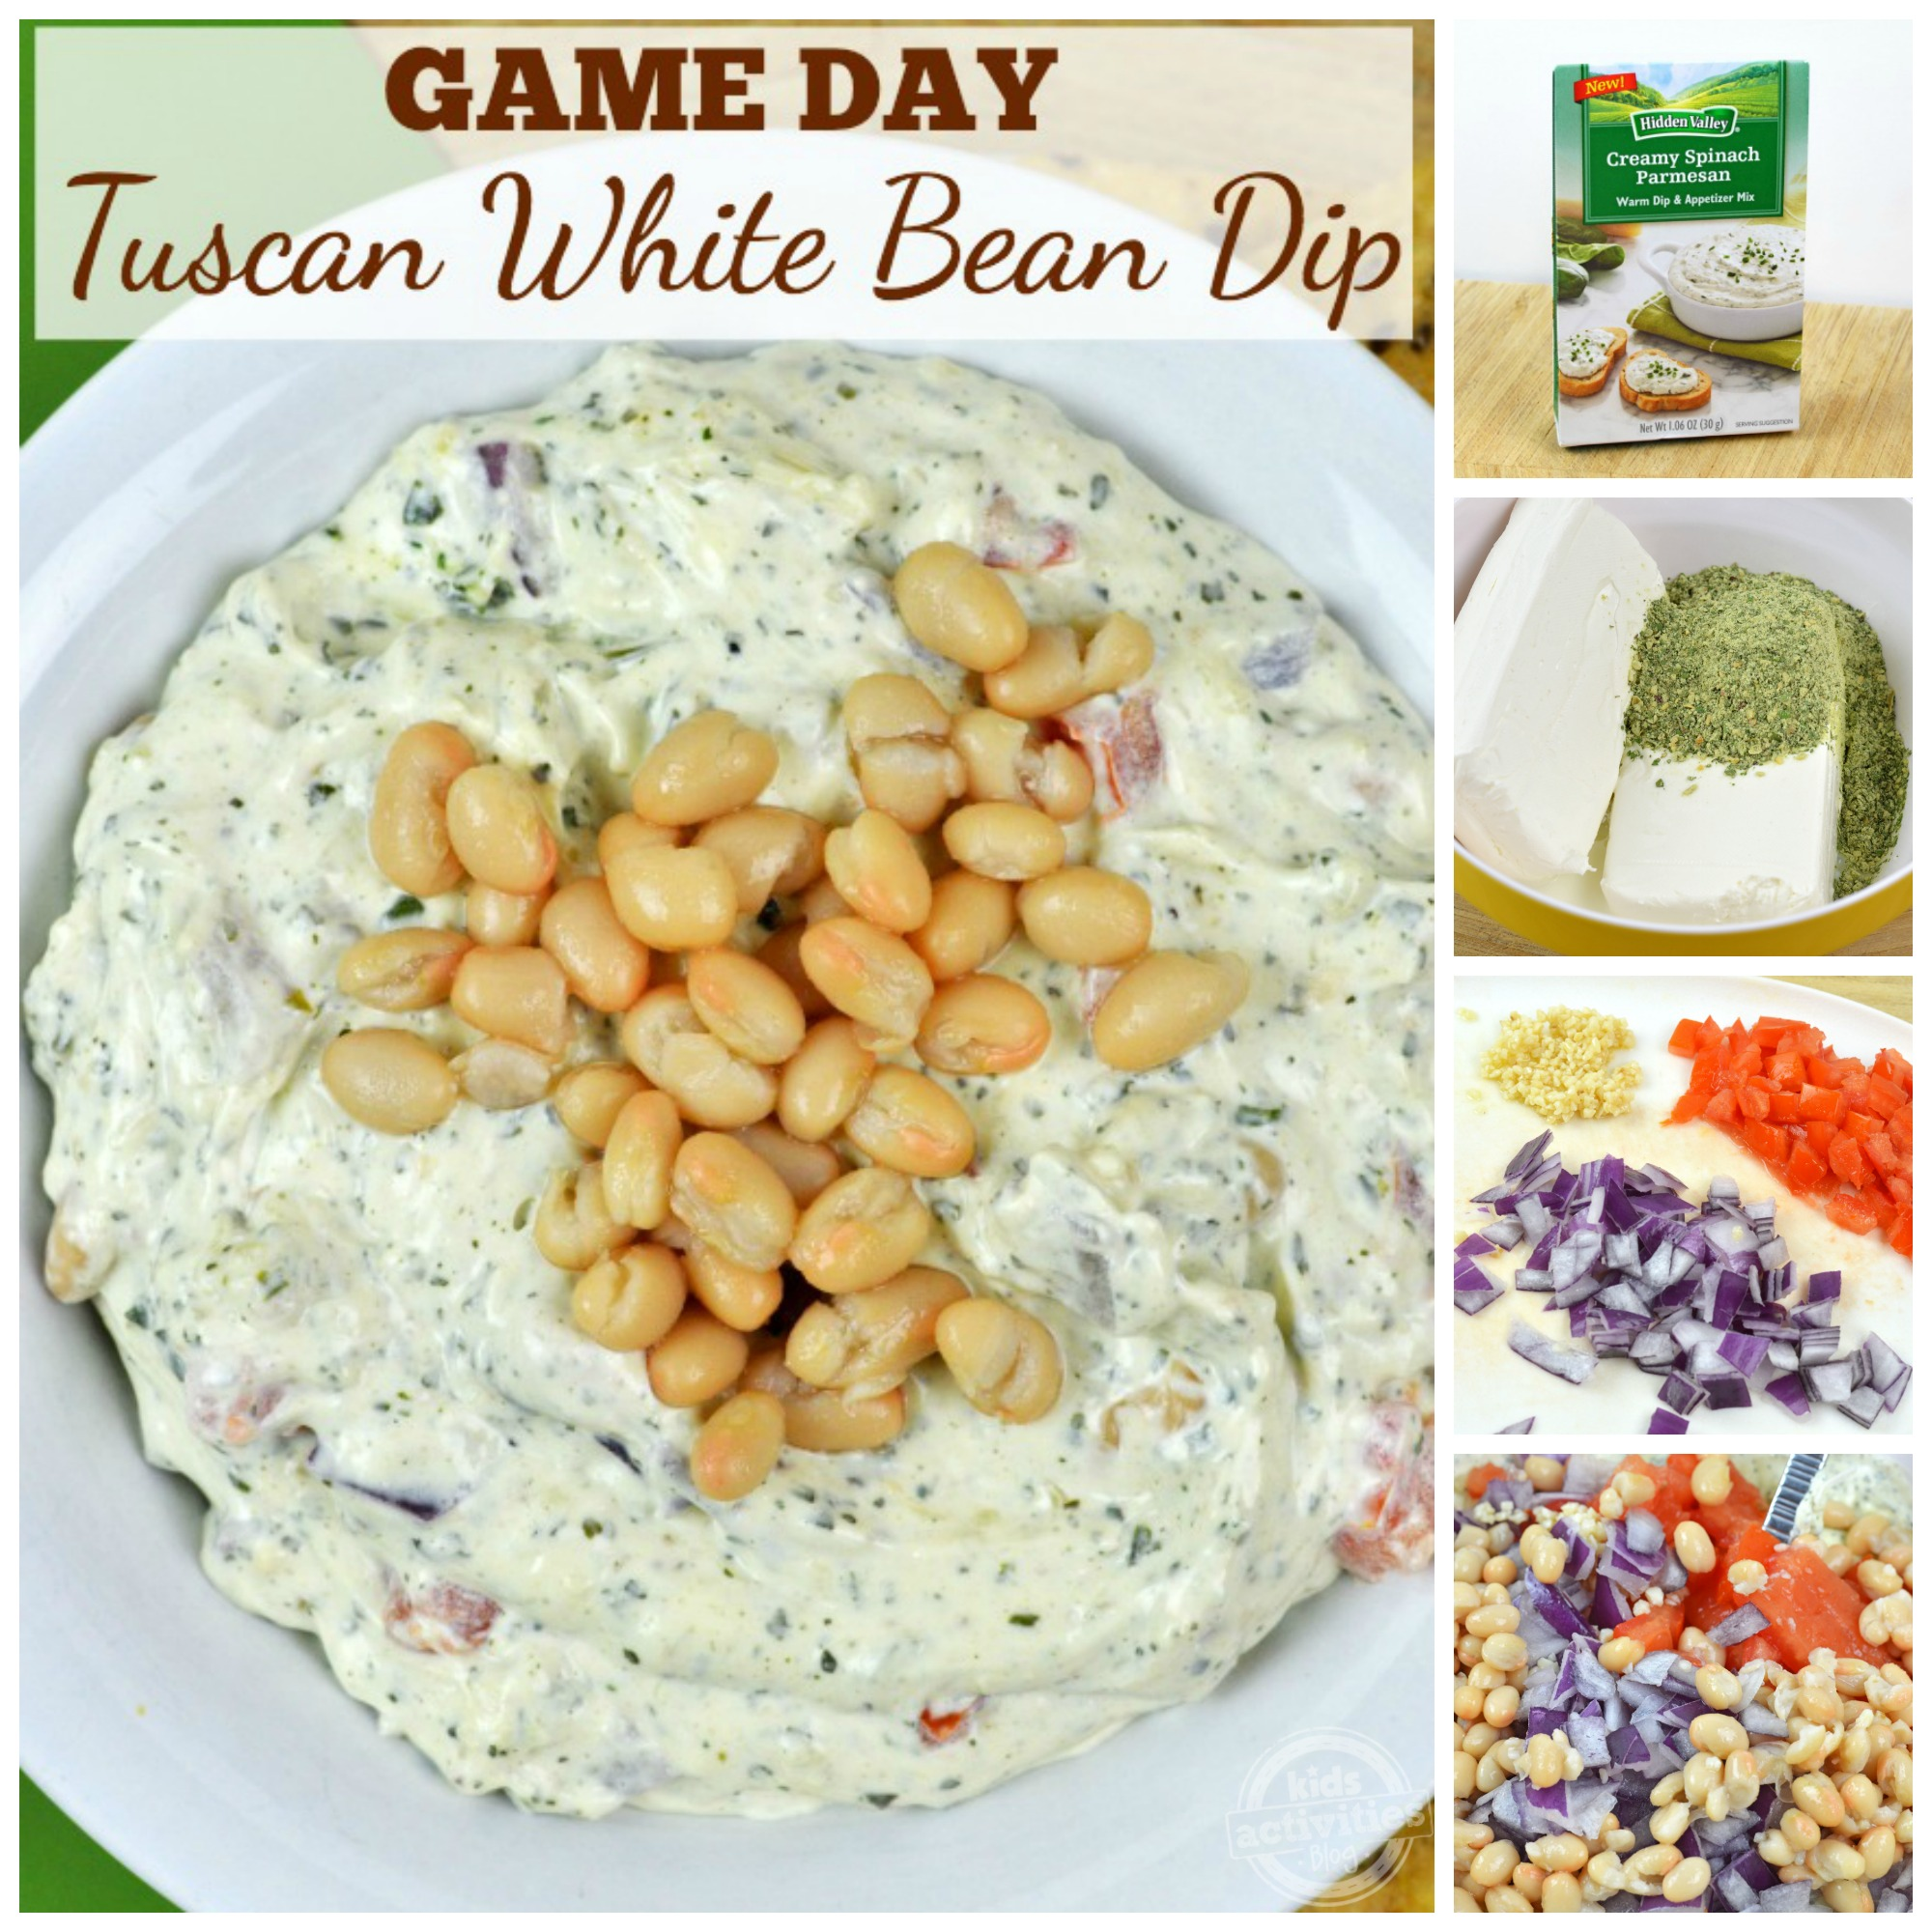 game day tuscan white bean dip collage